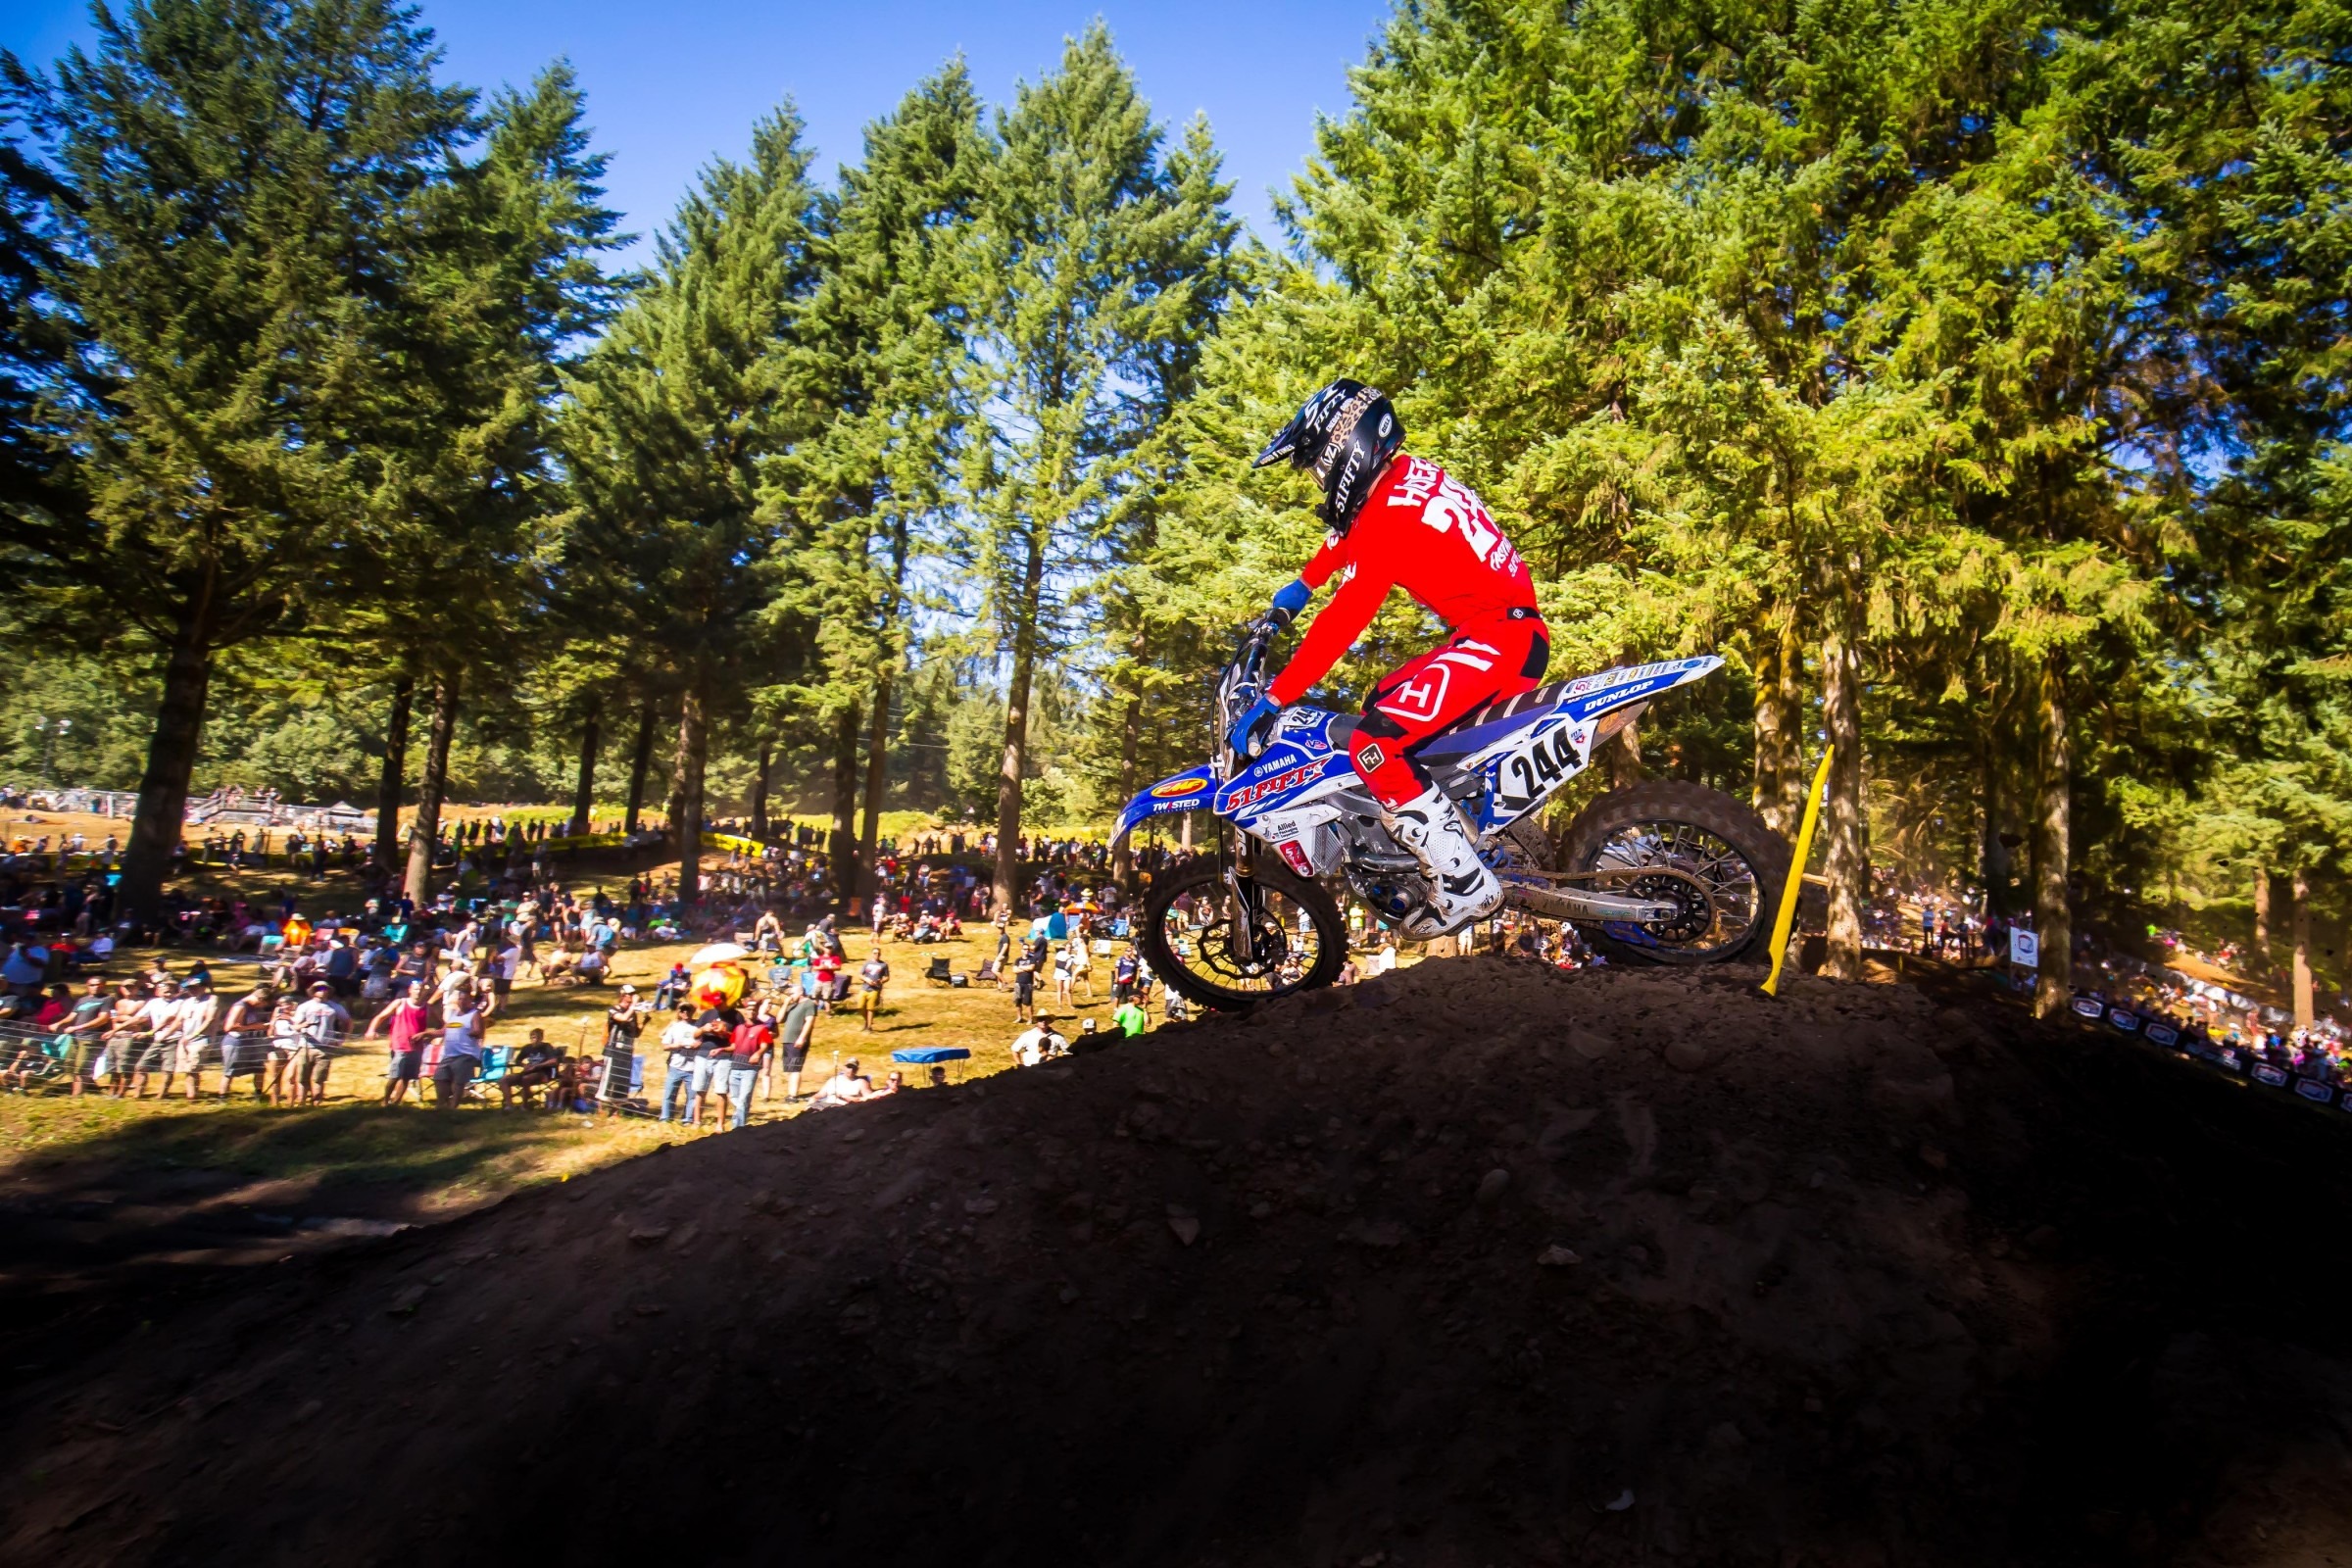 51Fifty Energy Drink Yamaha is a supercross-only team, but they were willing to help Hoeft race the Washougal National, along with other select events this summer.